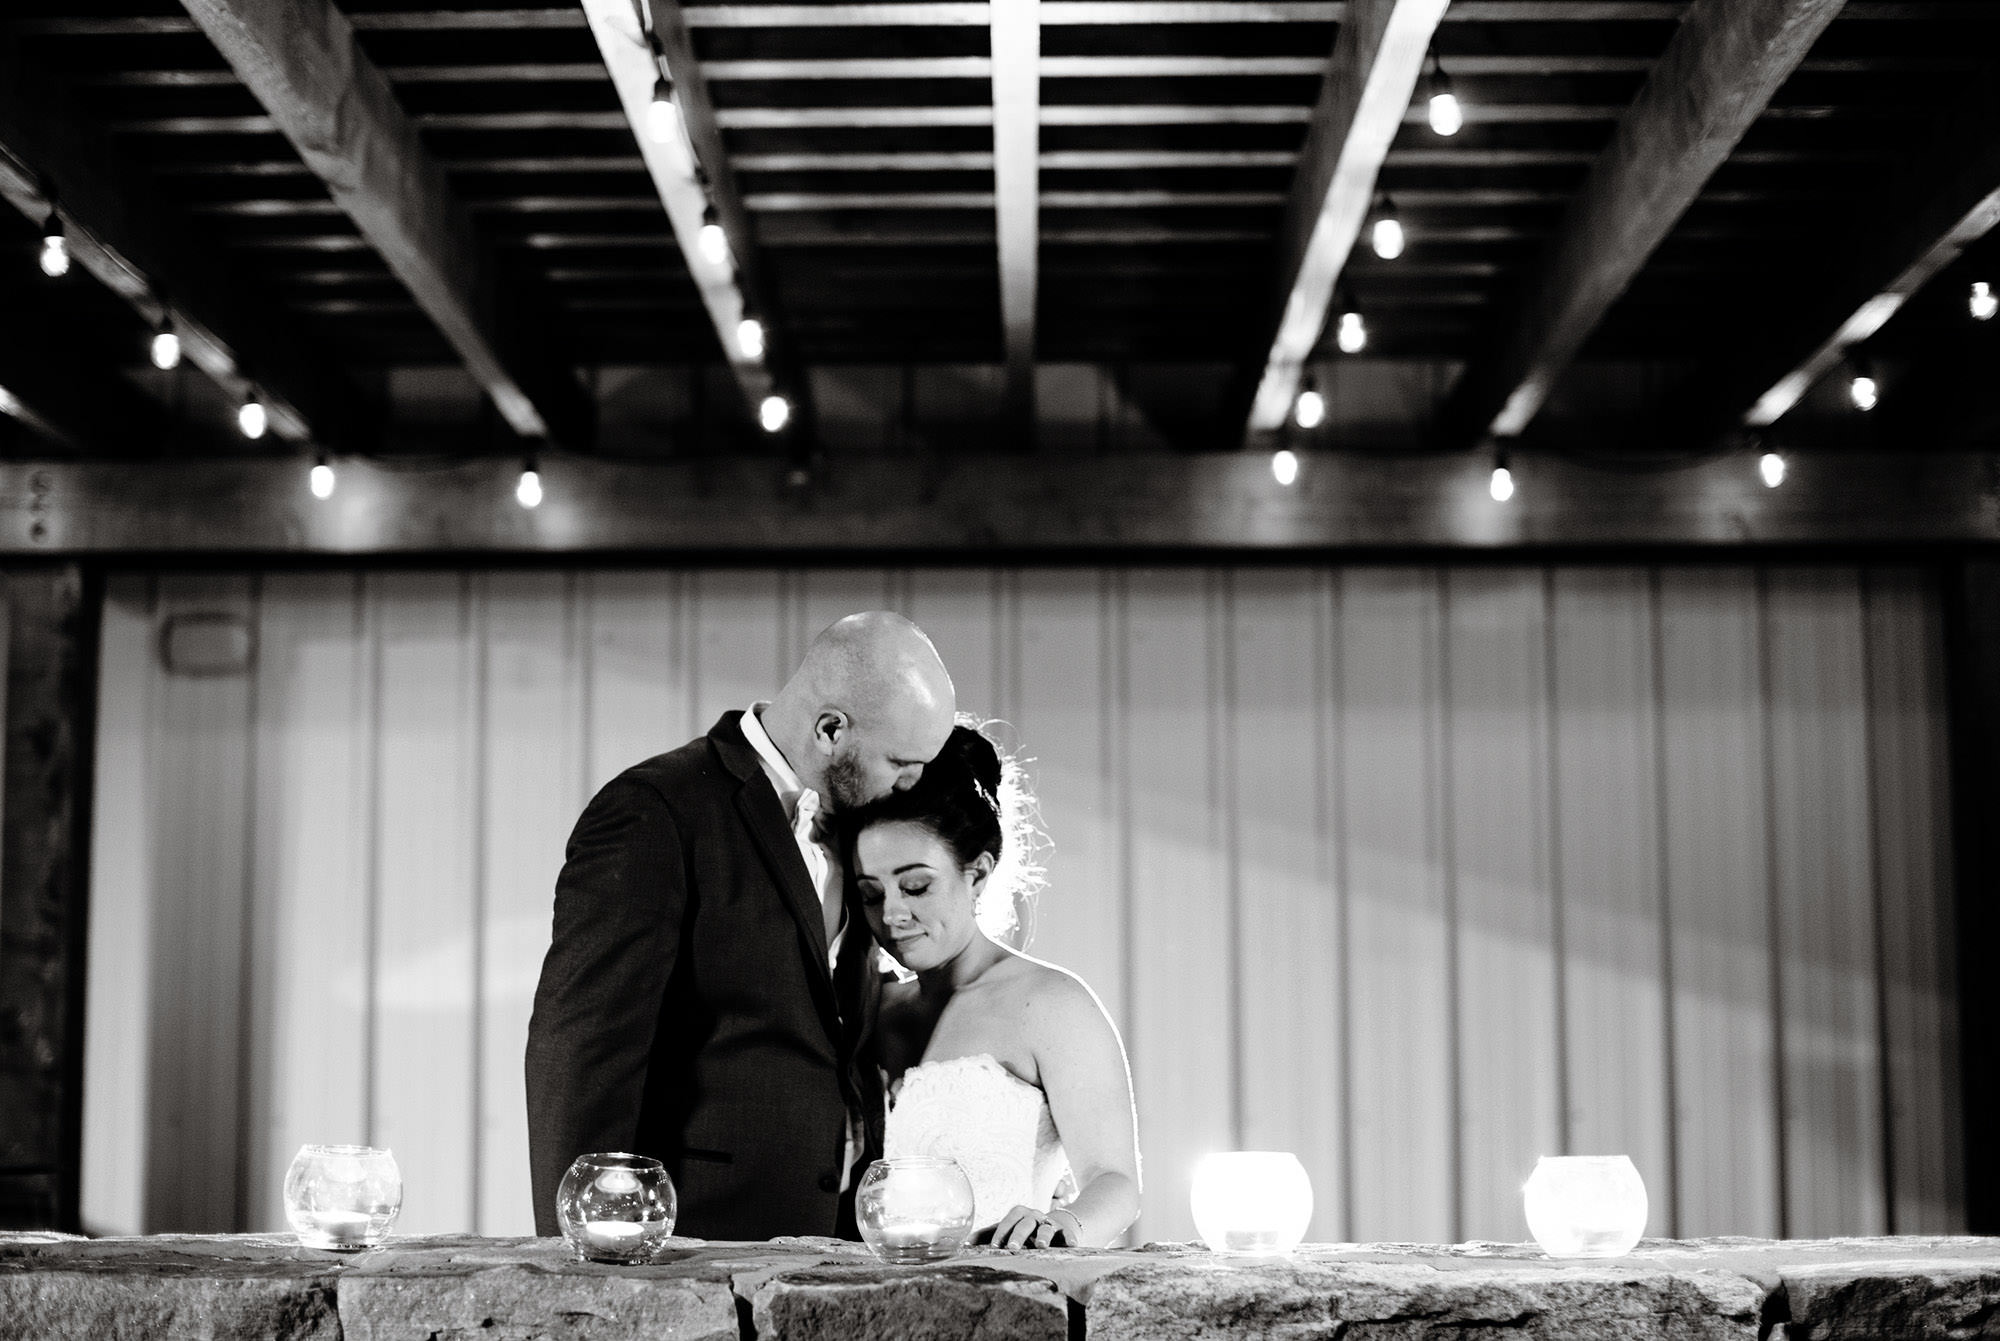 The couple poses for a portrait during the Silver Oak Mystic wedding reception.